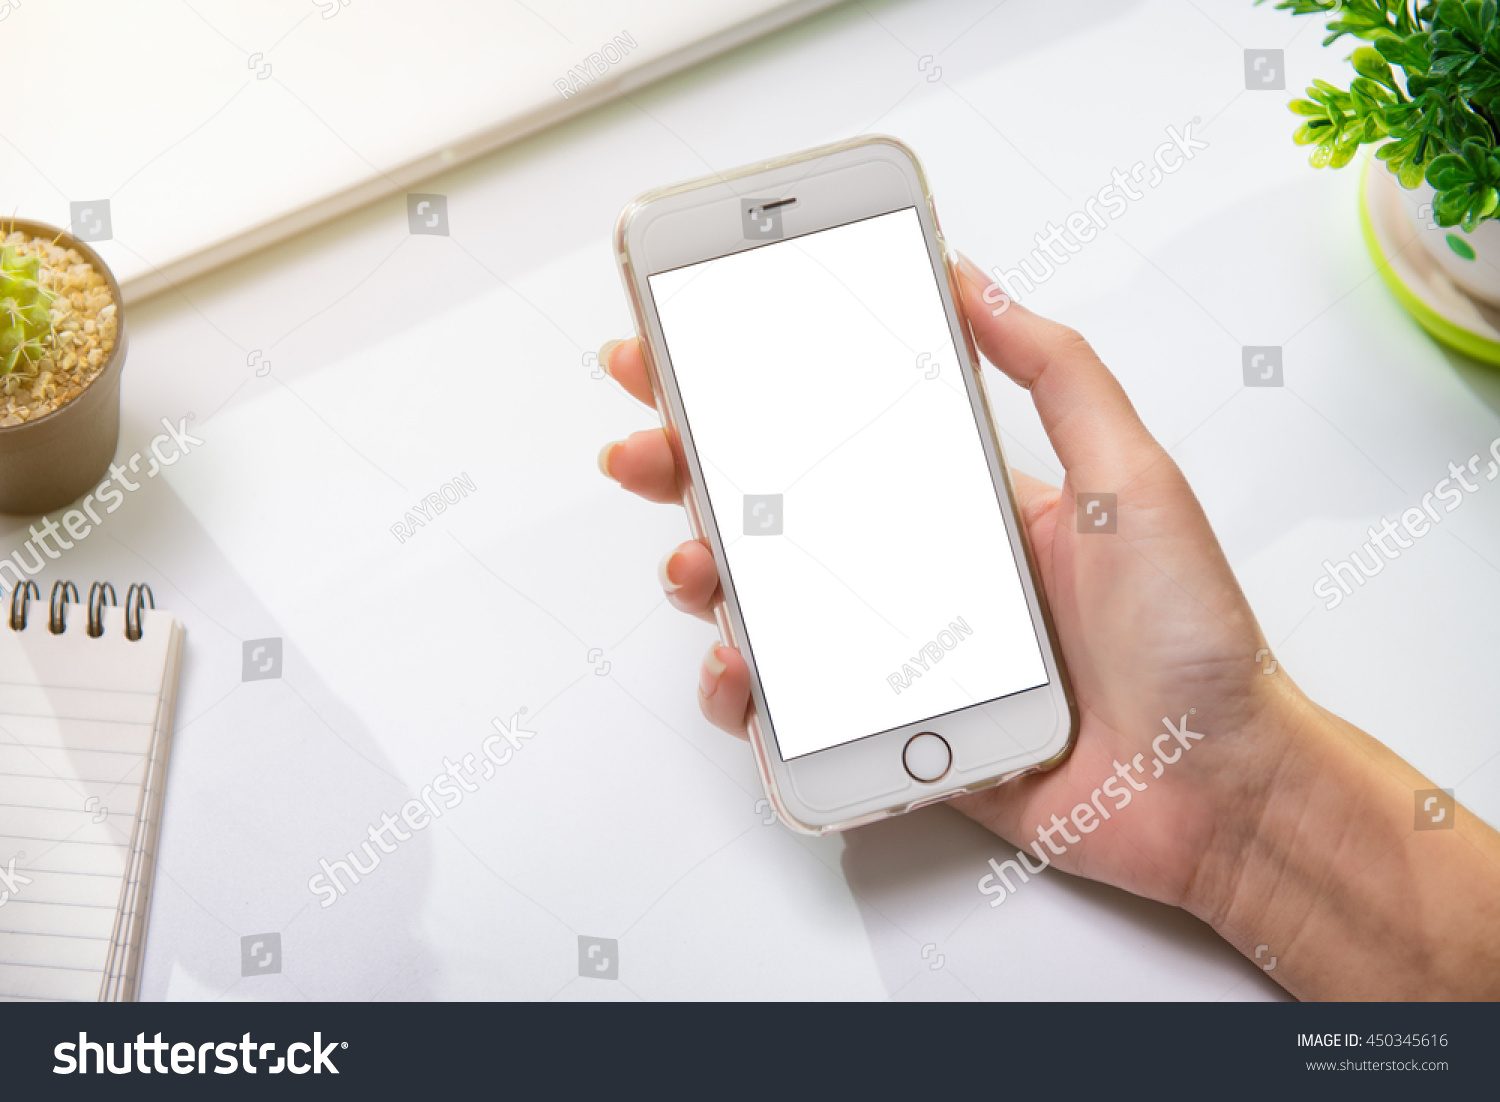 Desk in the office Hand is holding showing smartphone with blank mock up screen over office desk table. This can be used to montage the mobile application. #450345616